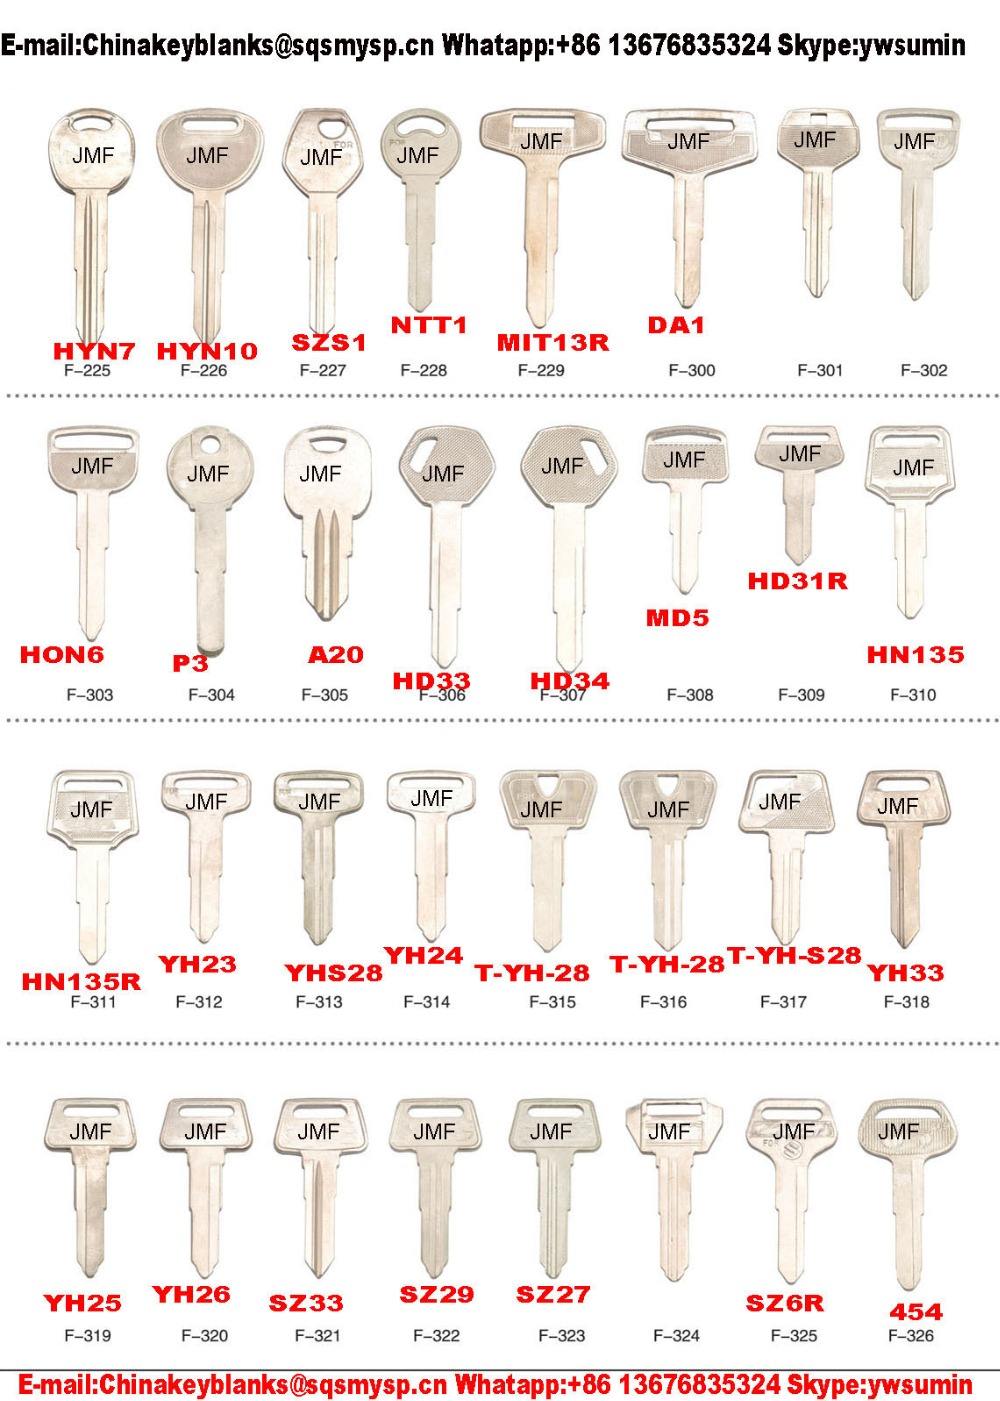 f201 types of ps15 old brass replacement car keys blank